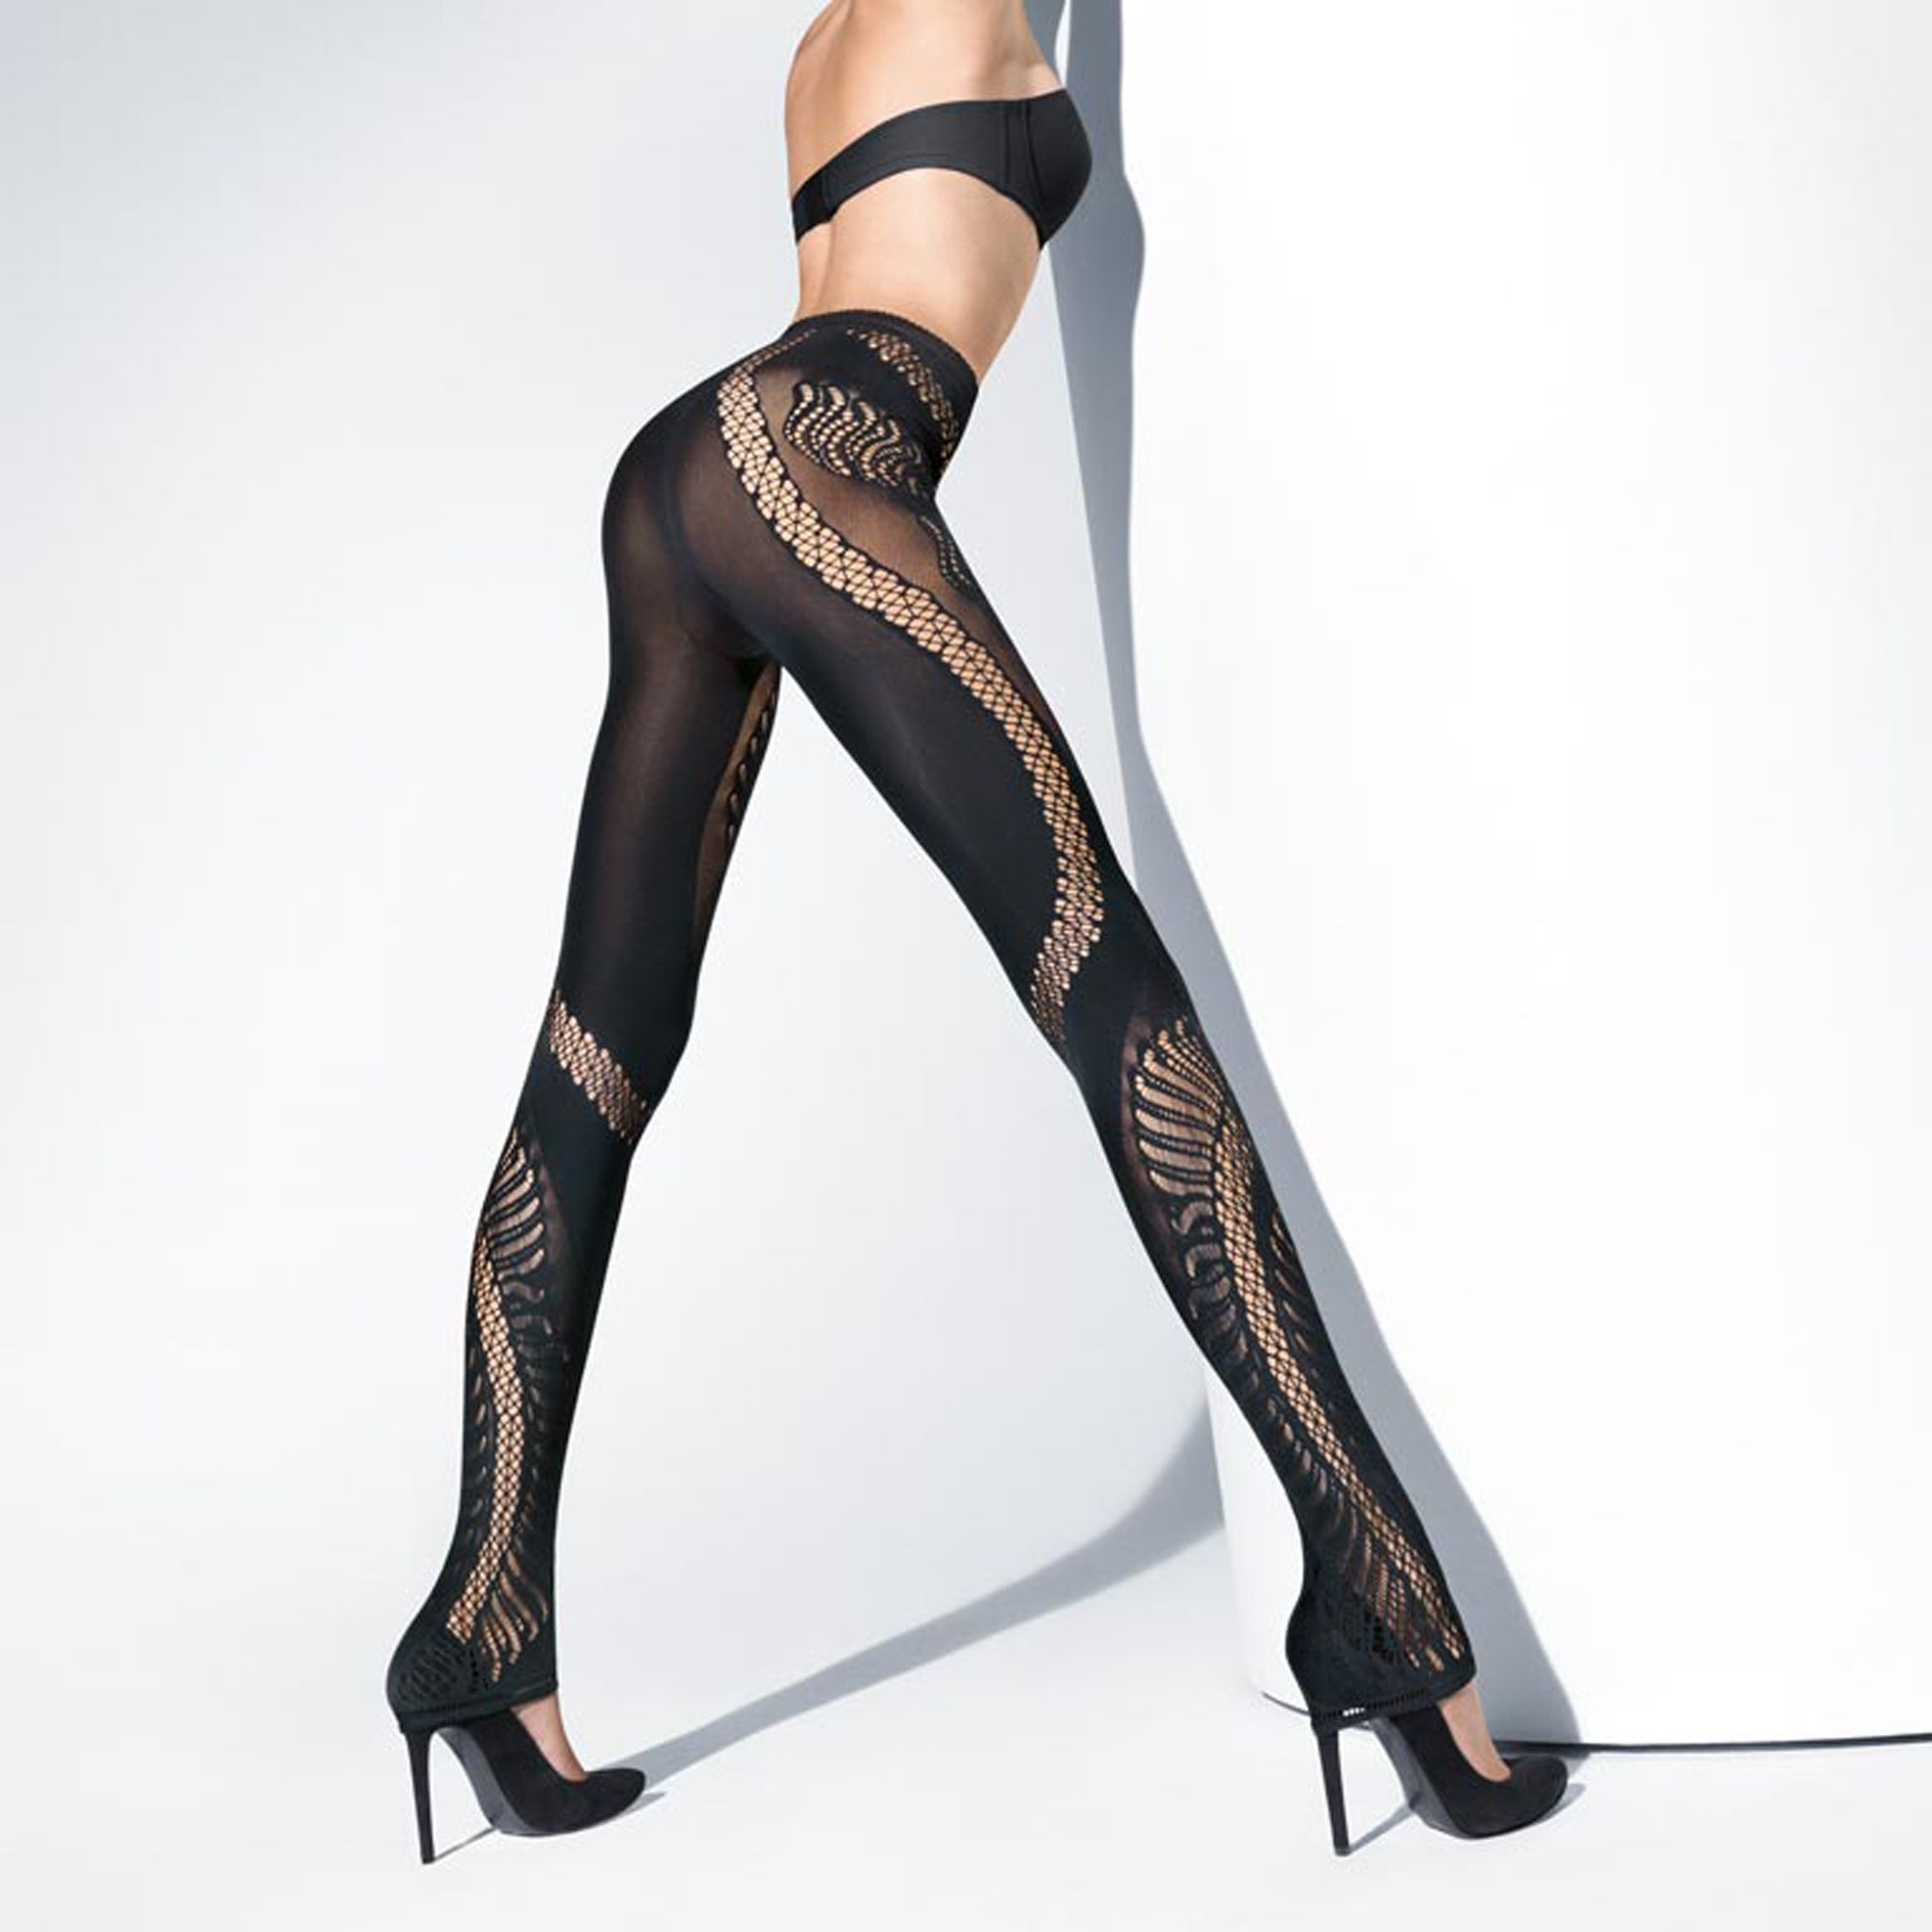 wolford single girls Buy wolford women's cilou tights and other tights at amazoncom our wide selection is elegible for free shipping and free returns.